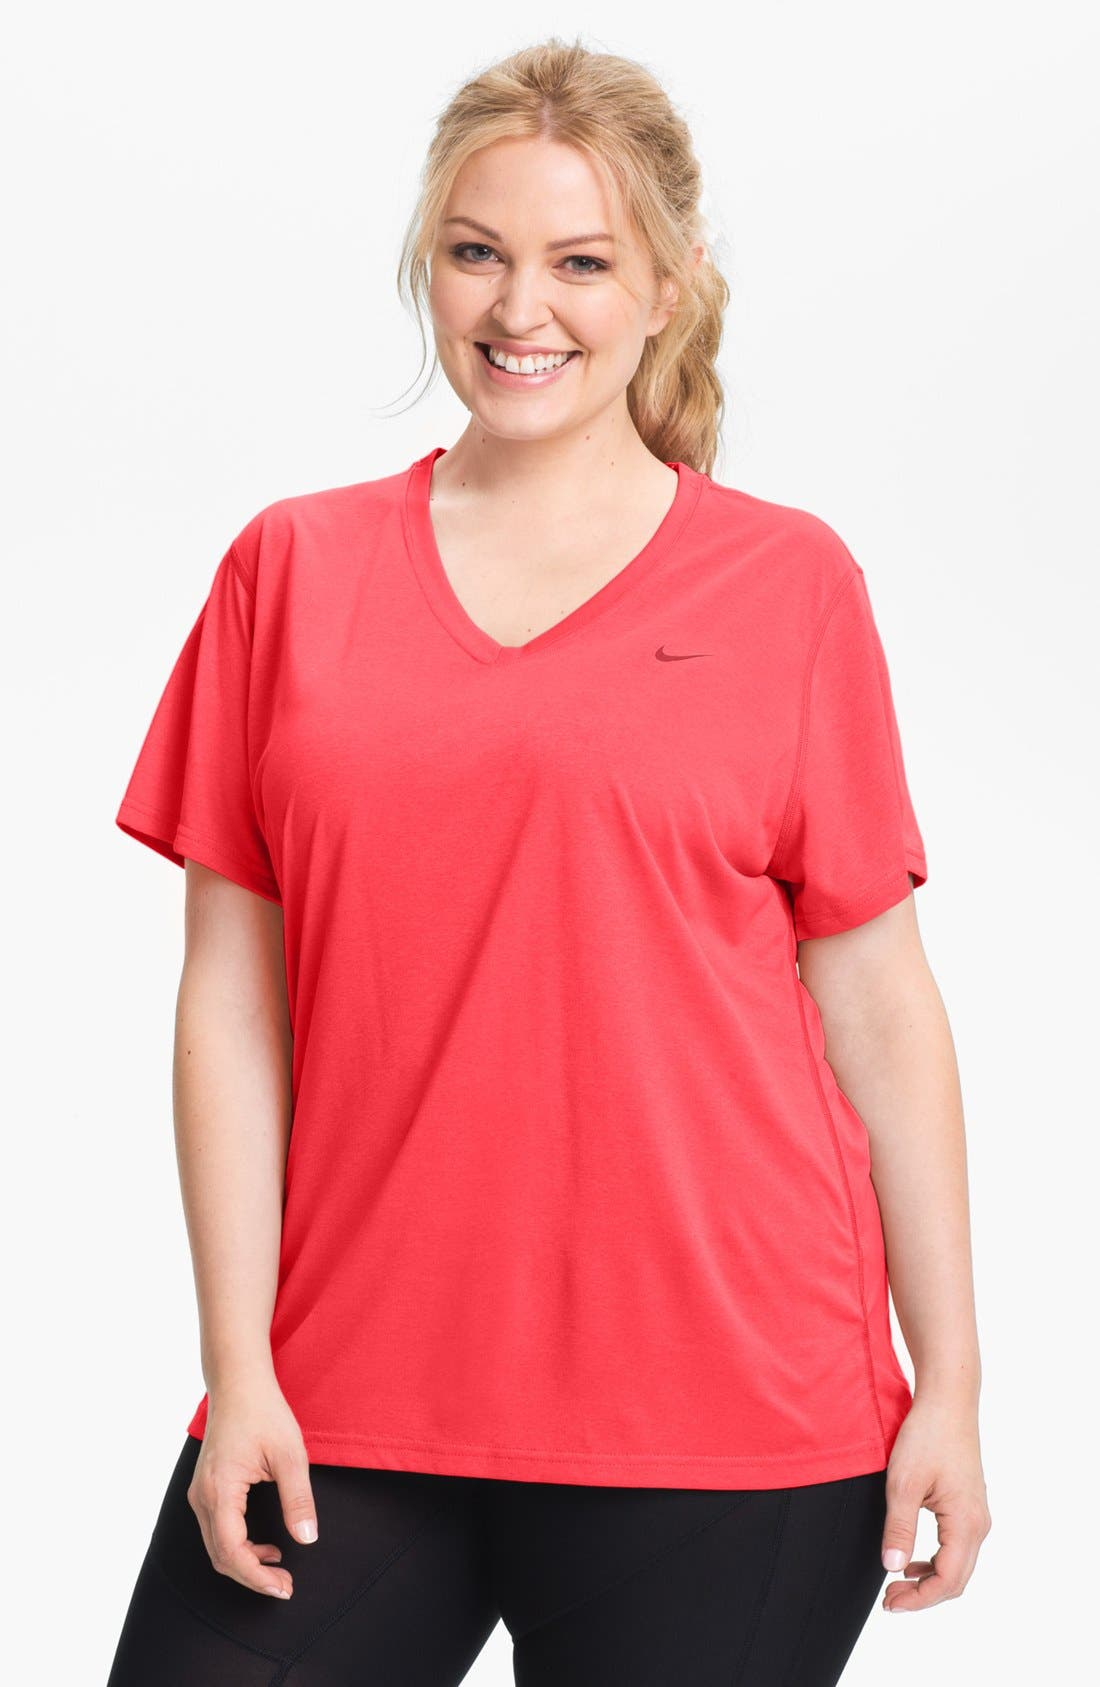 Main Image - Nike 'Legend' V-Neck Tee (Plus Size)